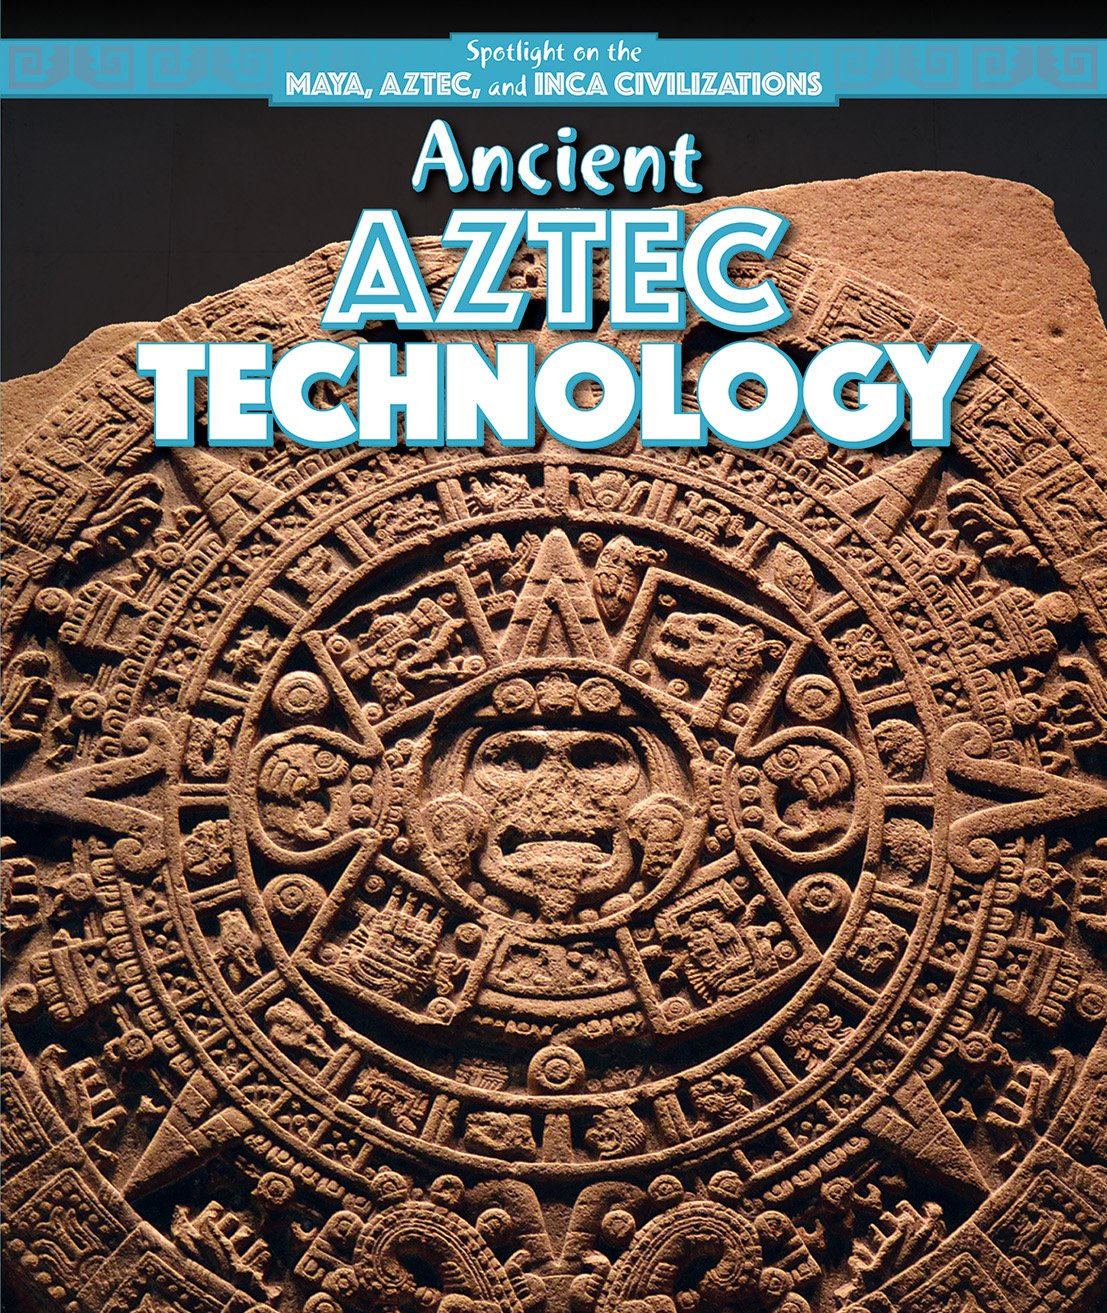 Ancient Aztec Technology (Spotlight on the Maya, Aztec, and Inca Civilizations)